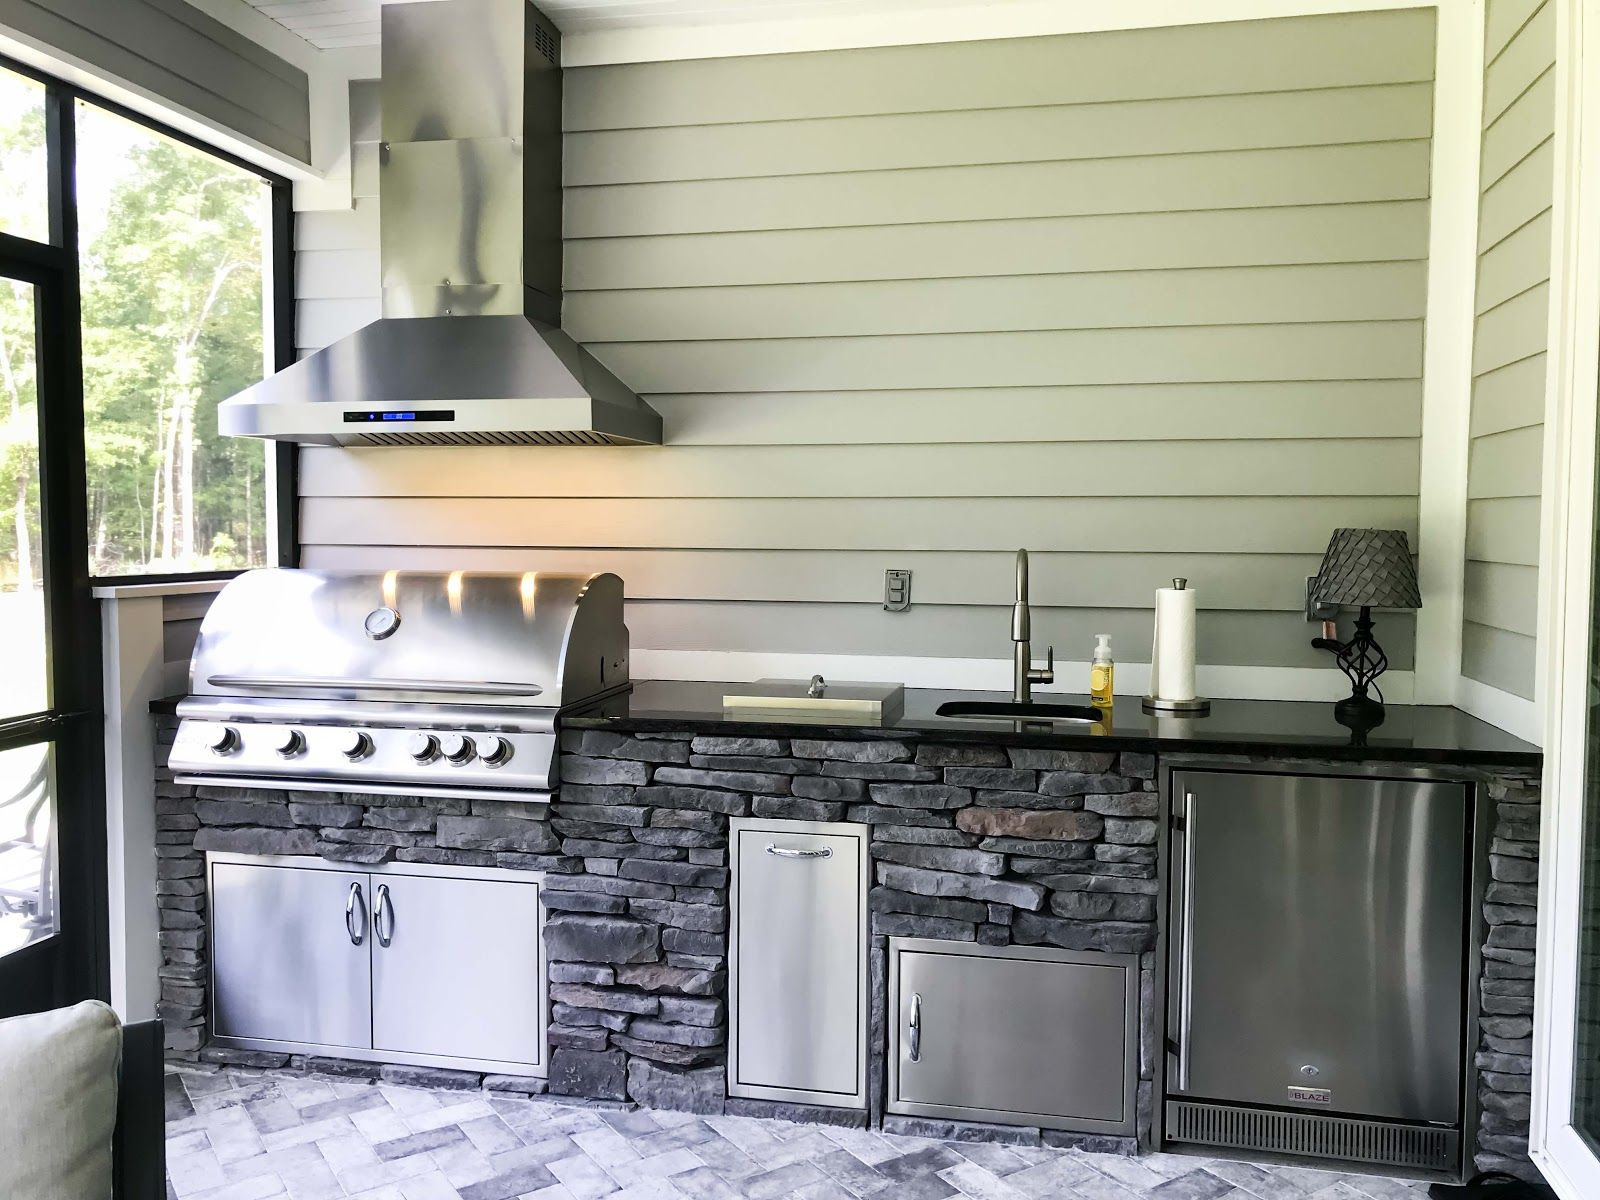 6 Outdoor Bbq Ideas To Upgrade Your Patio Outdoor Kitchen Bars Outdoor Bbq Outdoor Kitchen